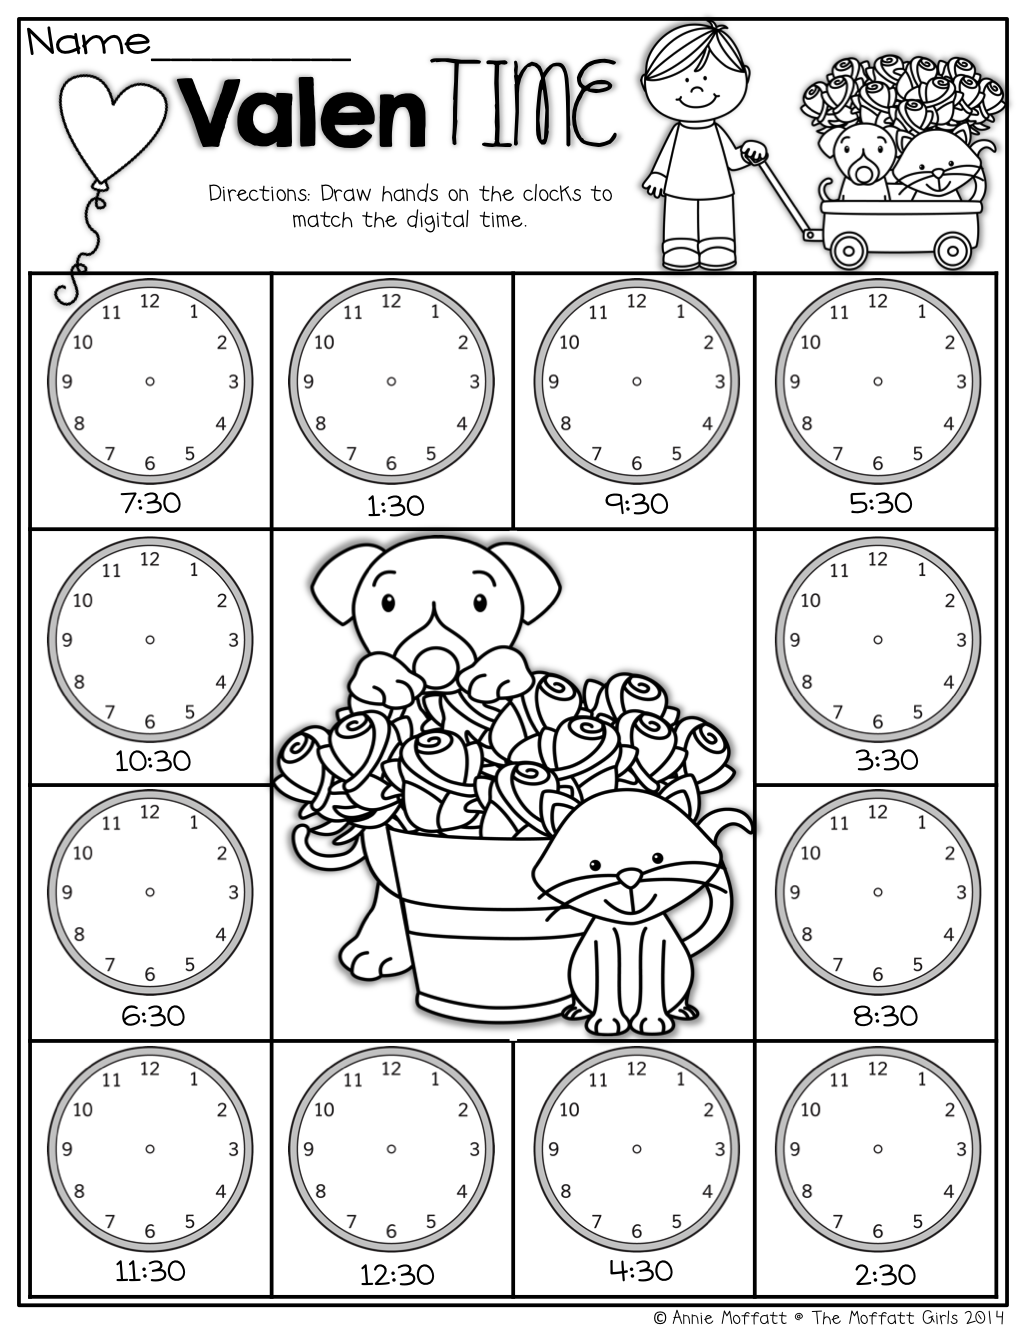 Valentime Clocks Time By The Half Hour With Images